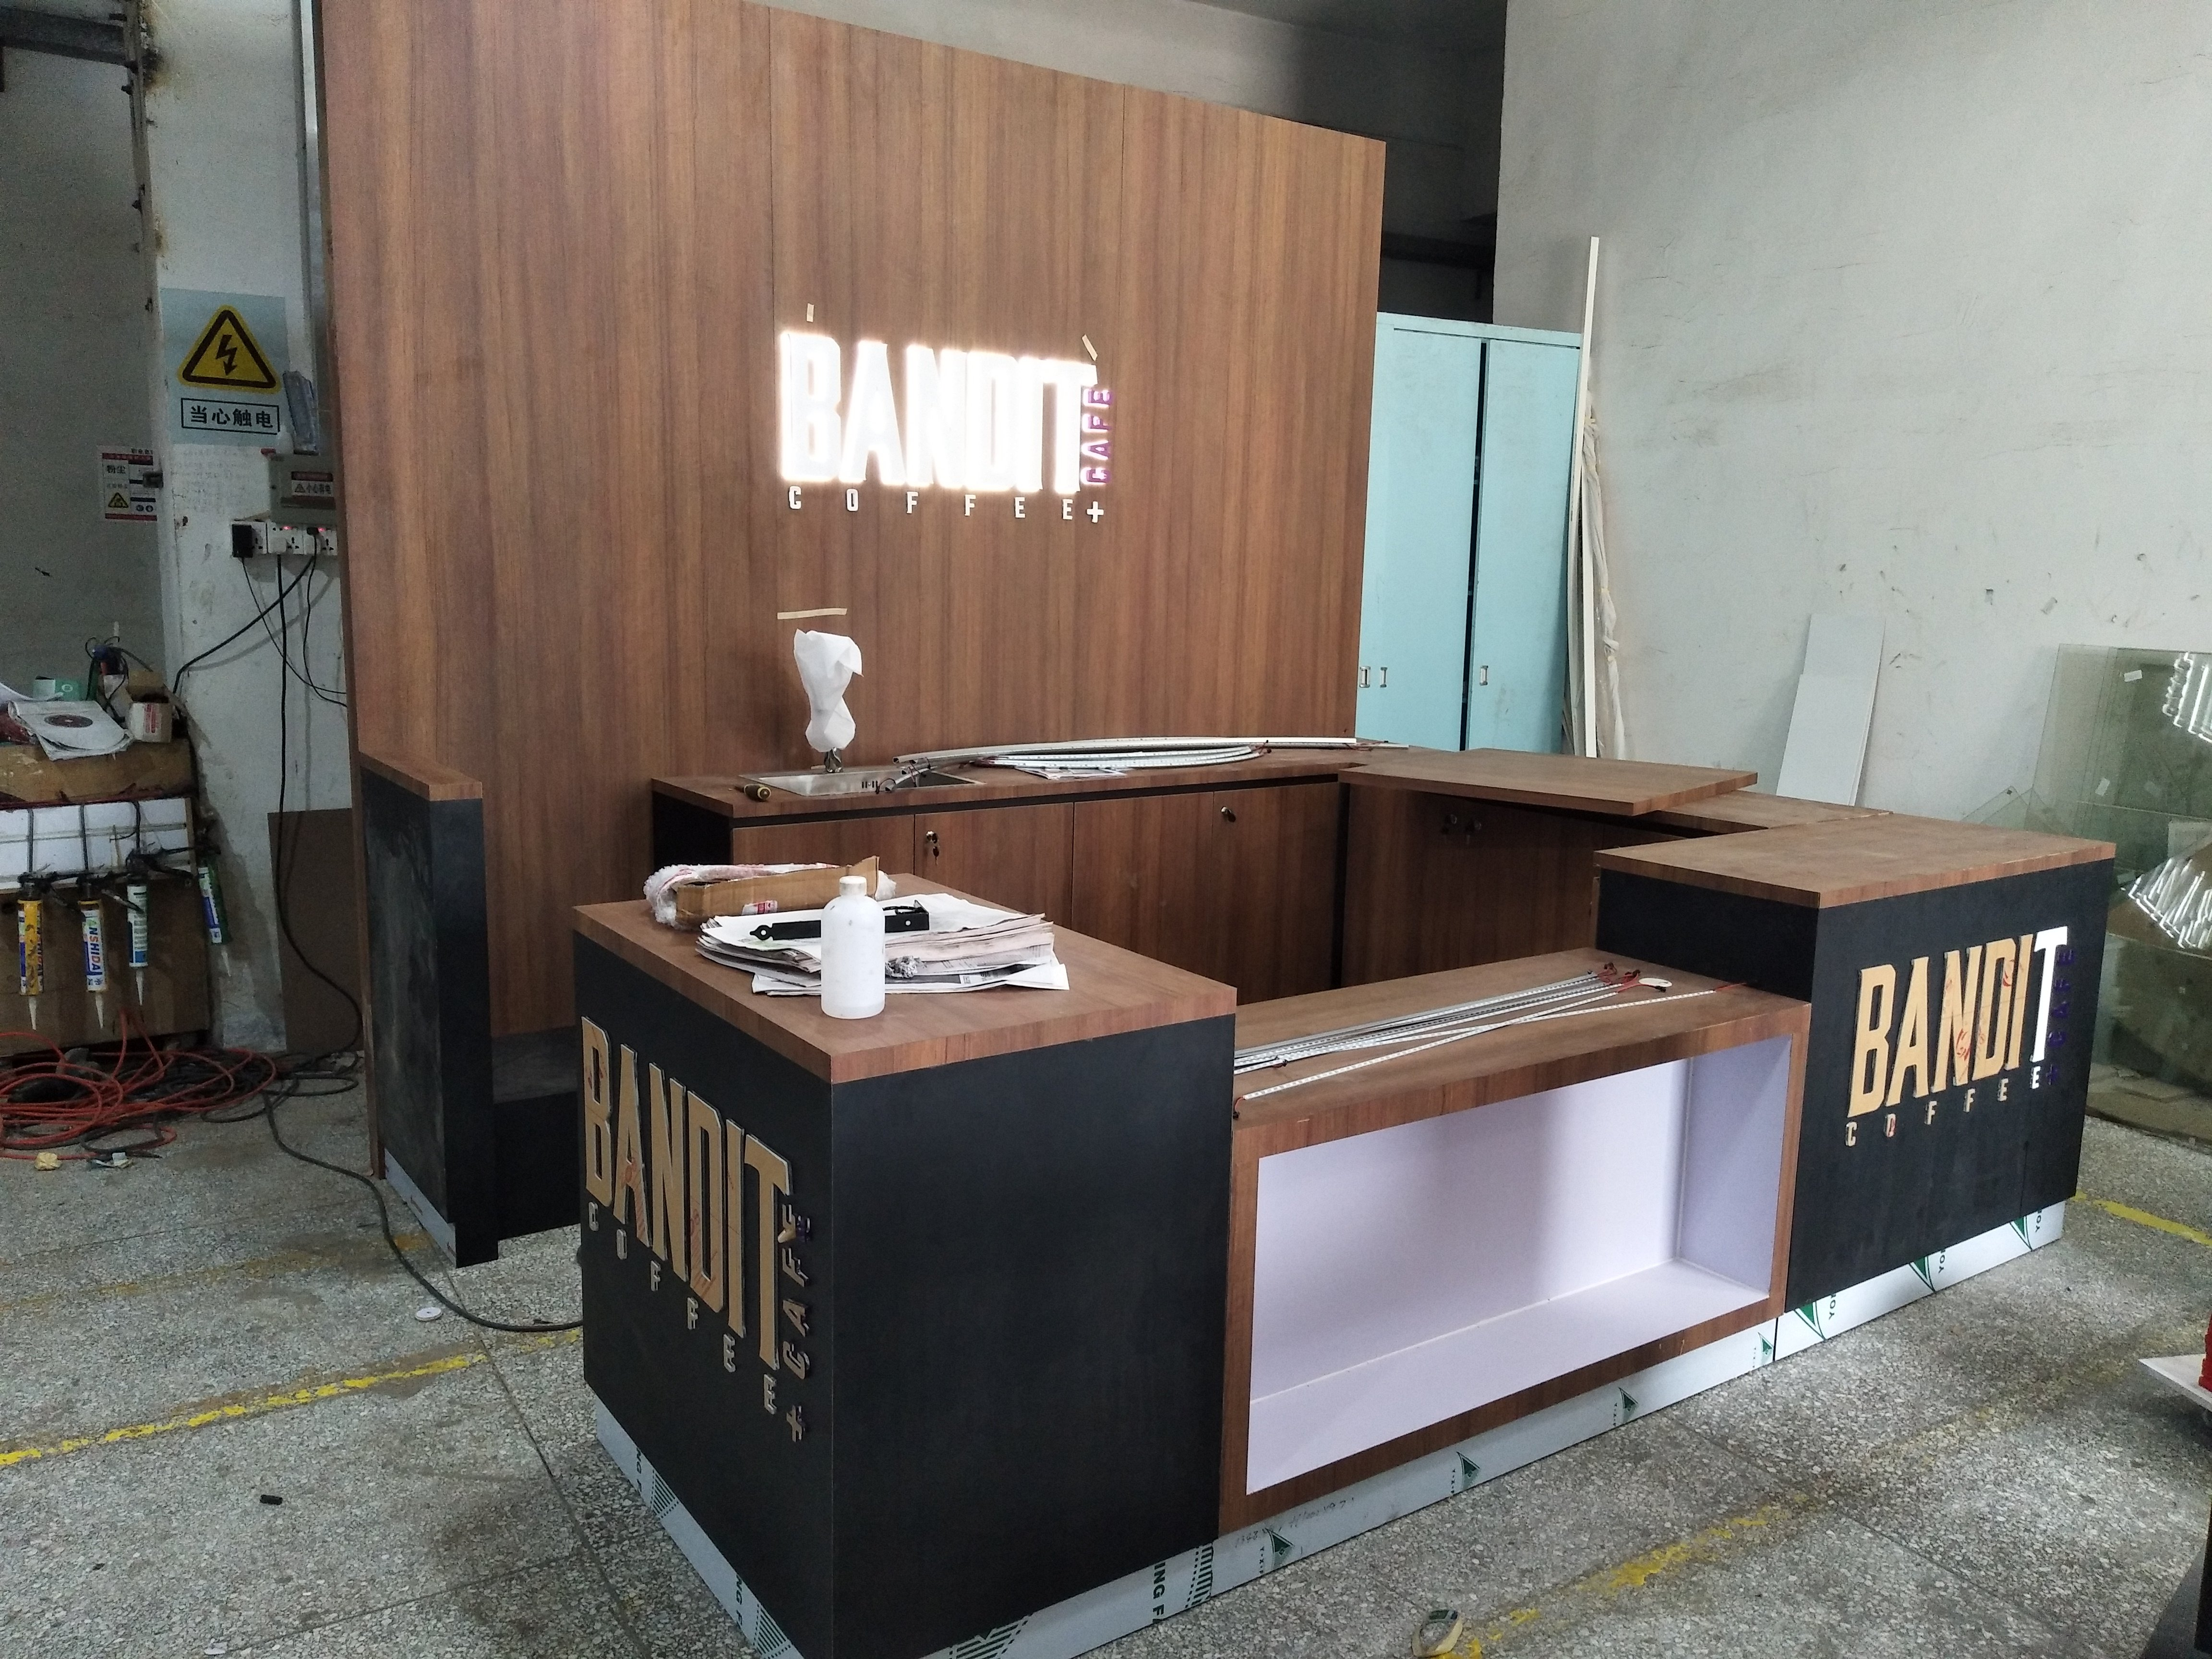 The production picture of Bandit coffee kiosk